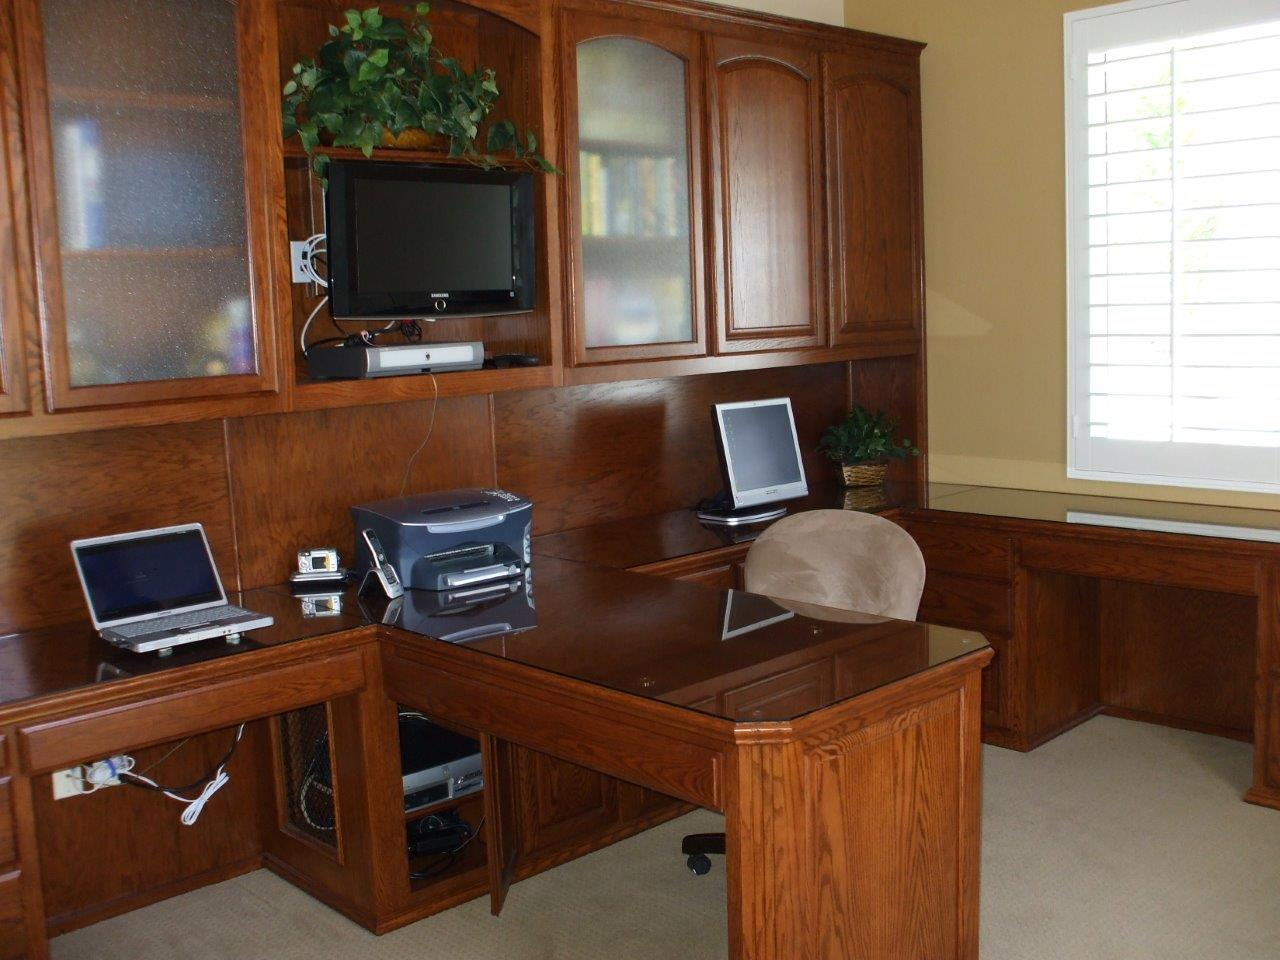 custom home office design stock. Custom Home Office Furniture Can Provide Maximum Storage And Organization Design Stock I